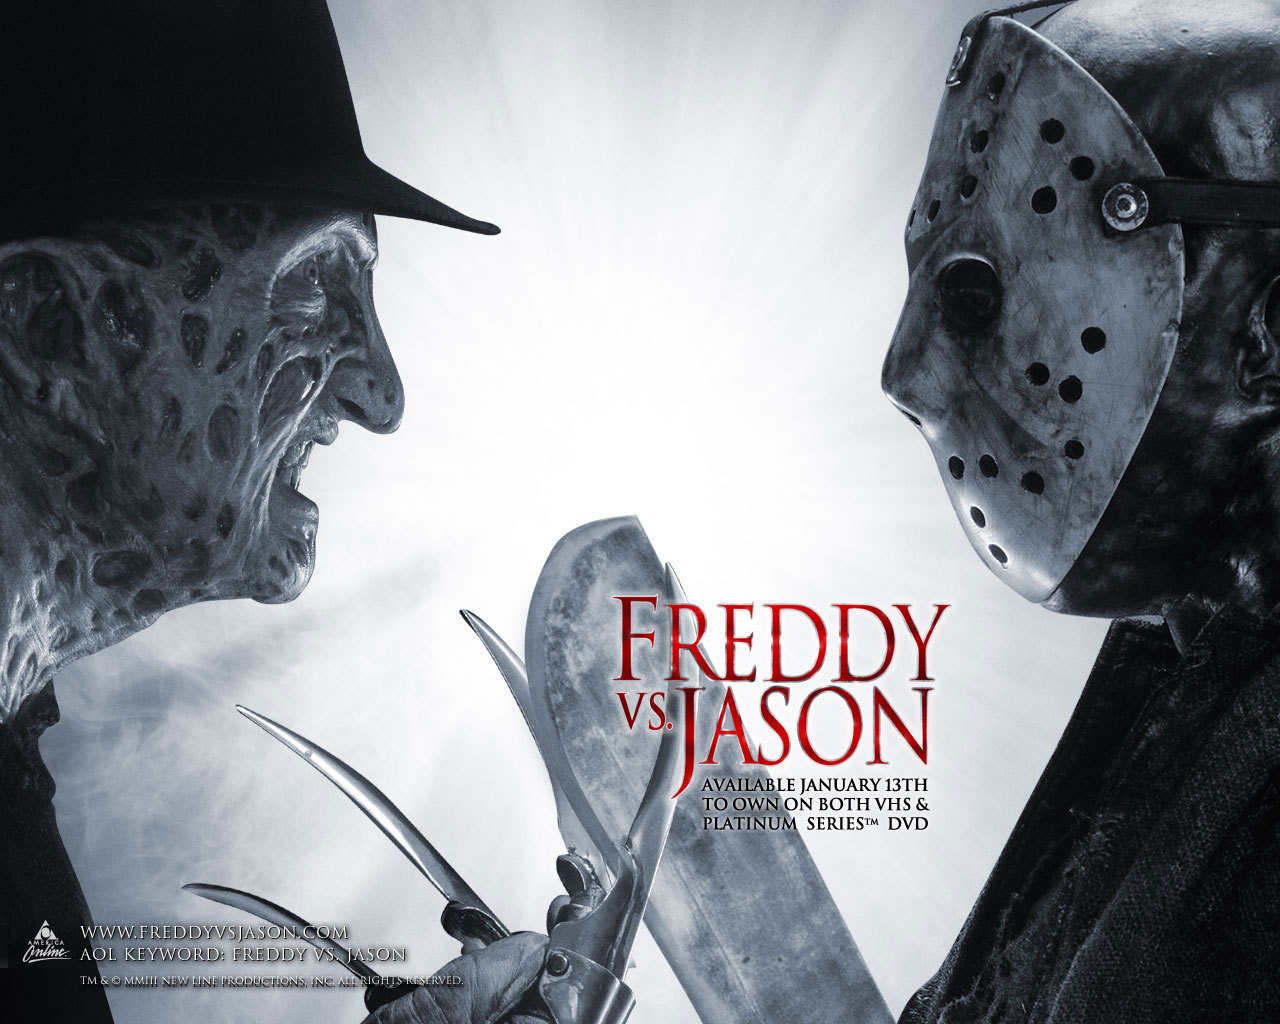 Freddy vs jason freddy kruege